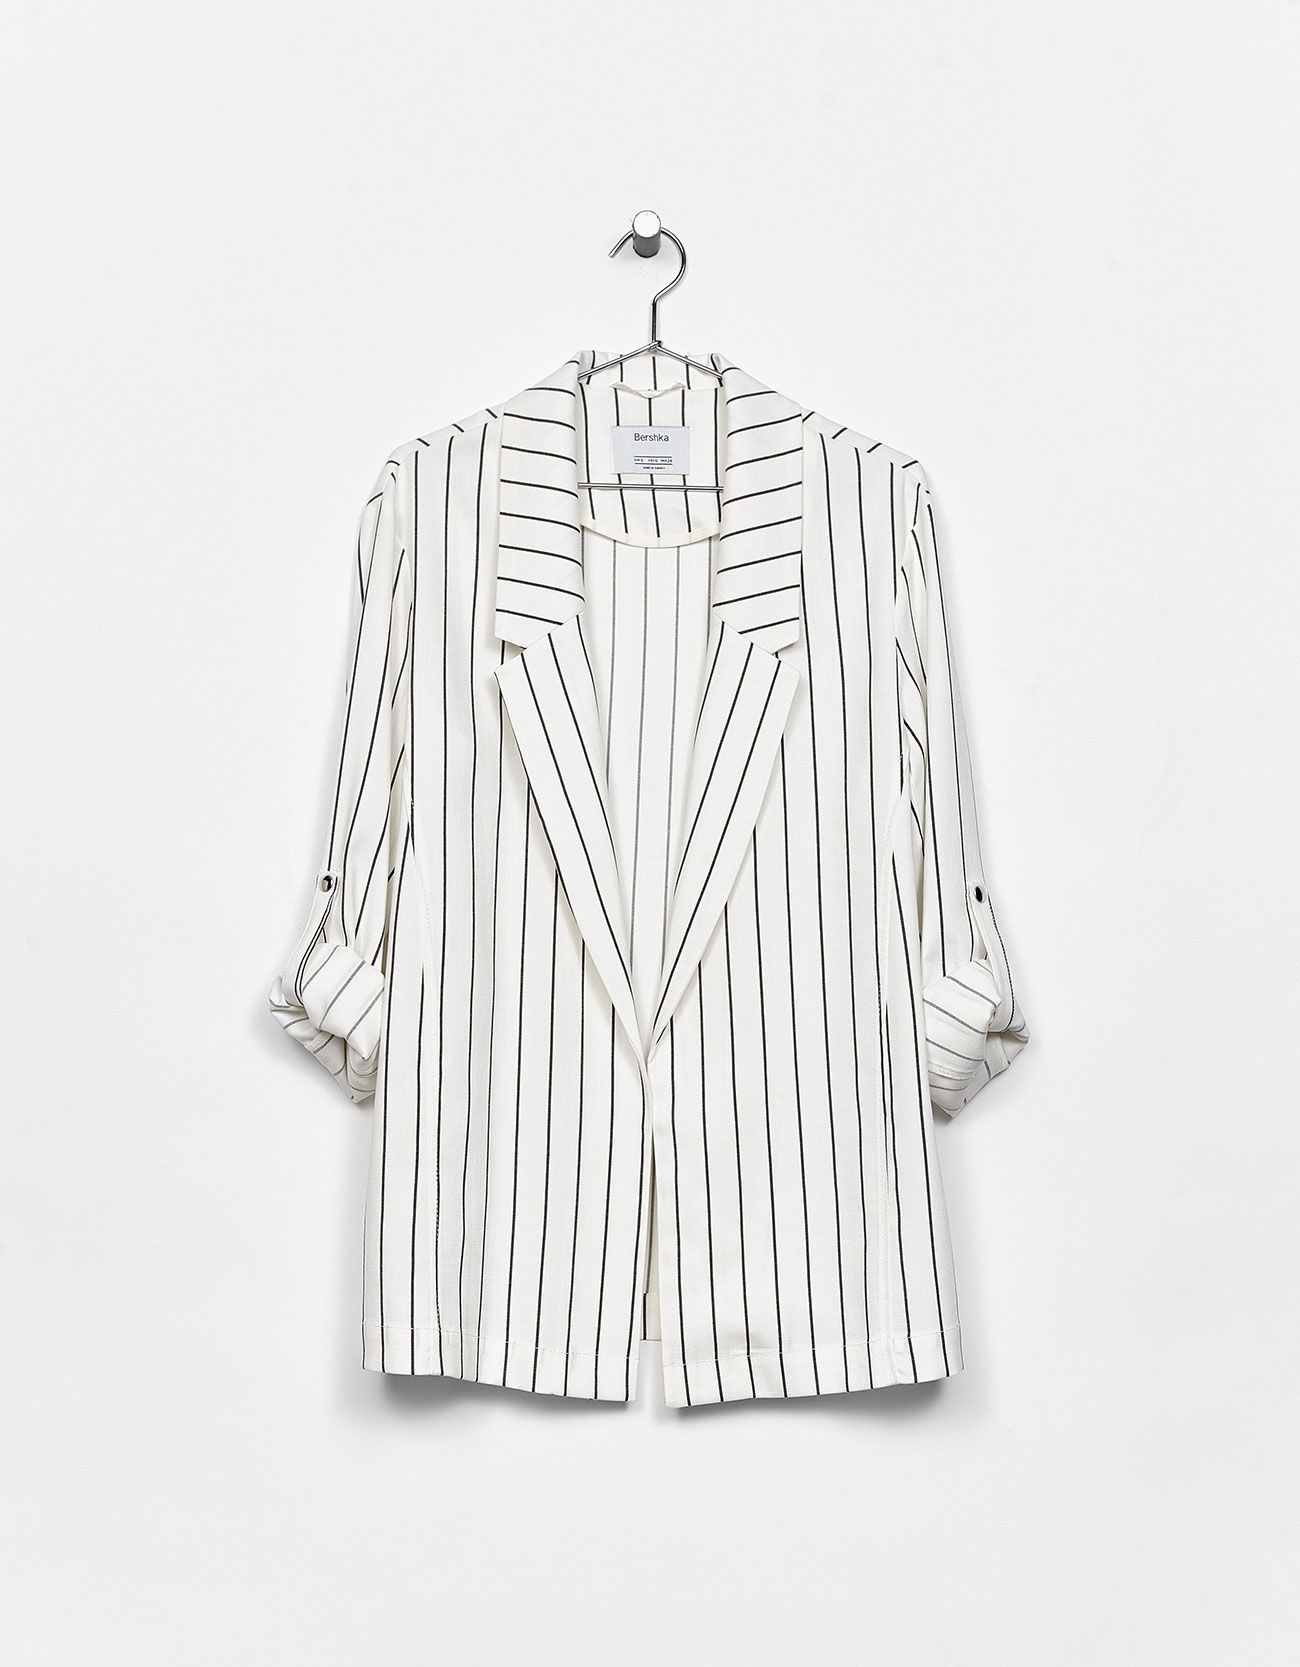 Flowing Blazer With Rolled Up Sleeves Coats Jackets Bershka Finland Women Blazer Jackets Ideas Of Stylish Clothes For Women Work Wear Outfits Clothes